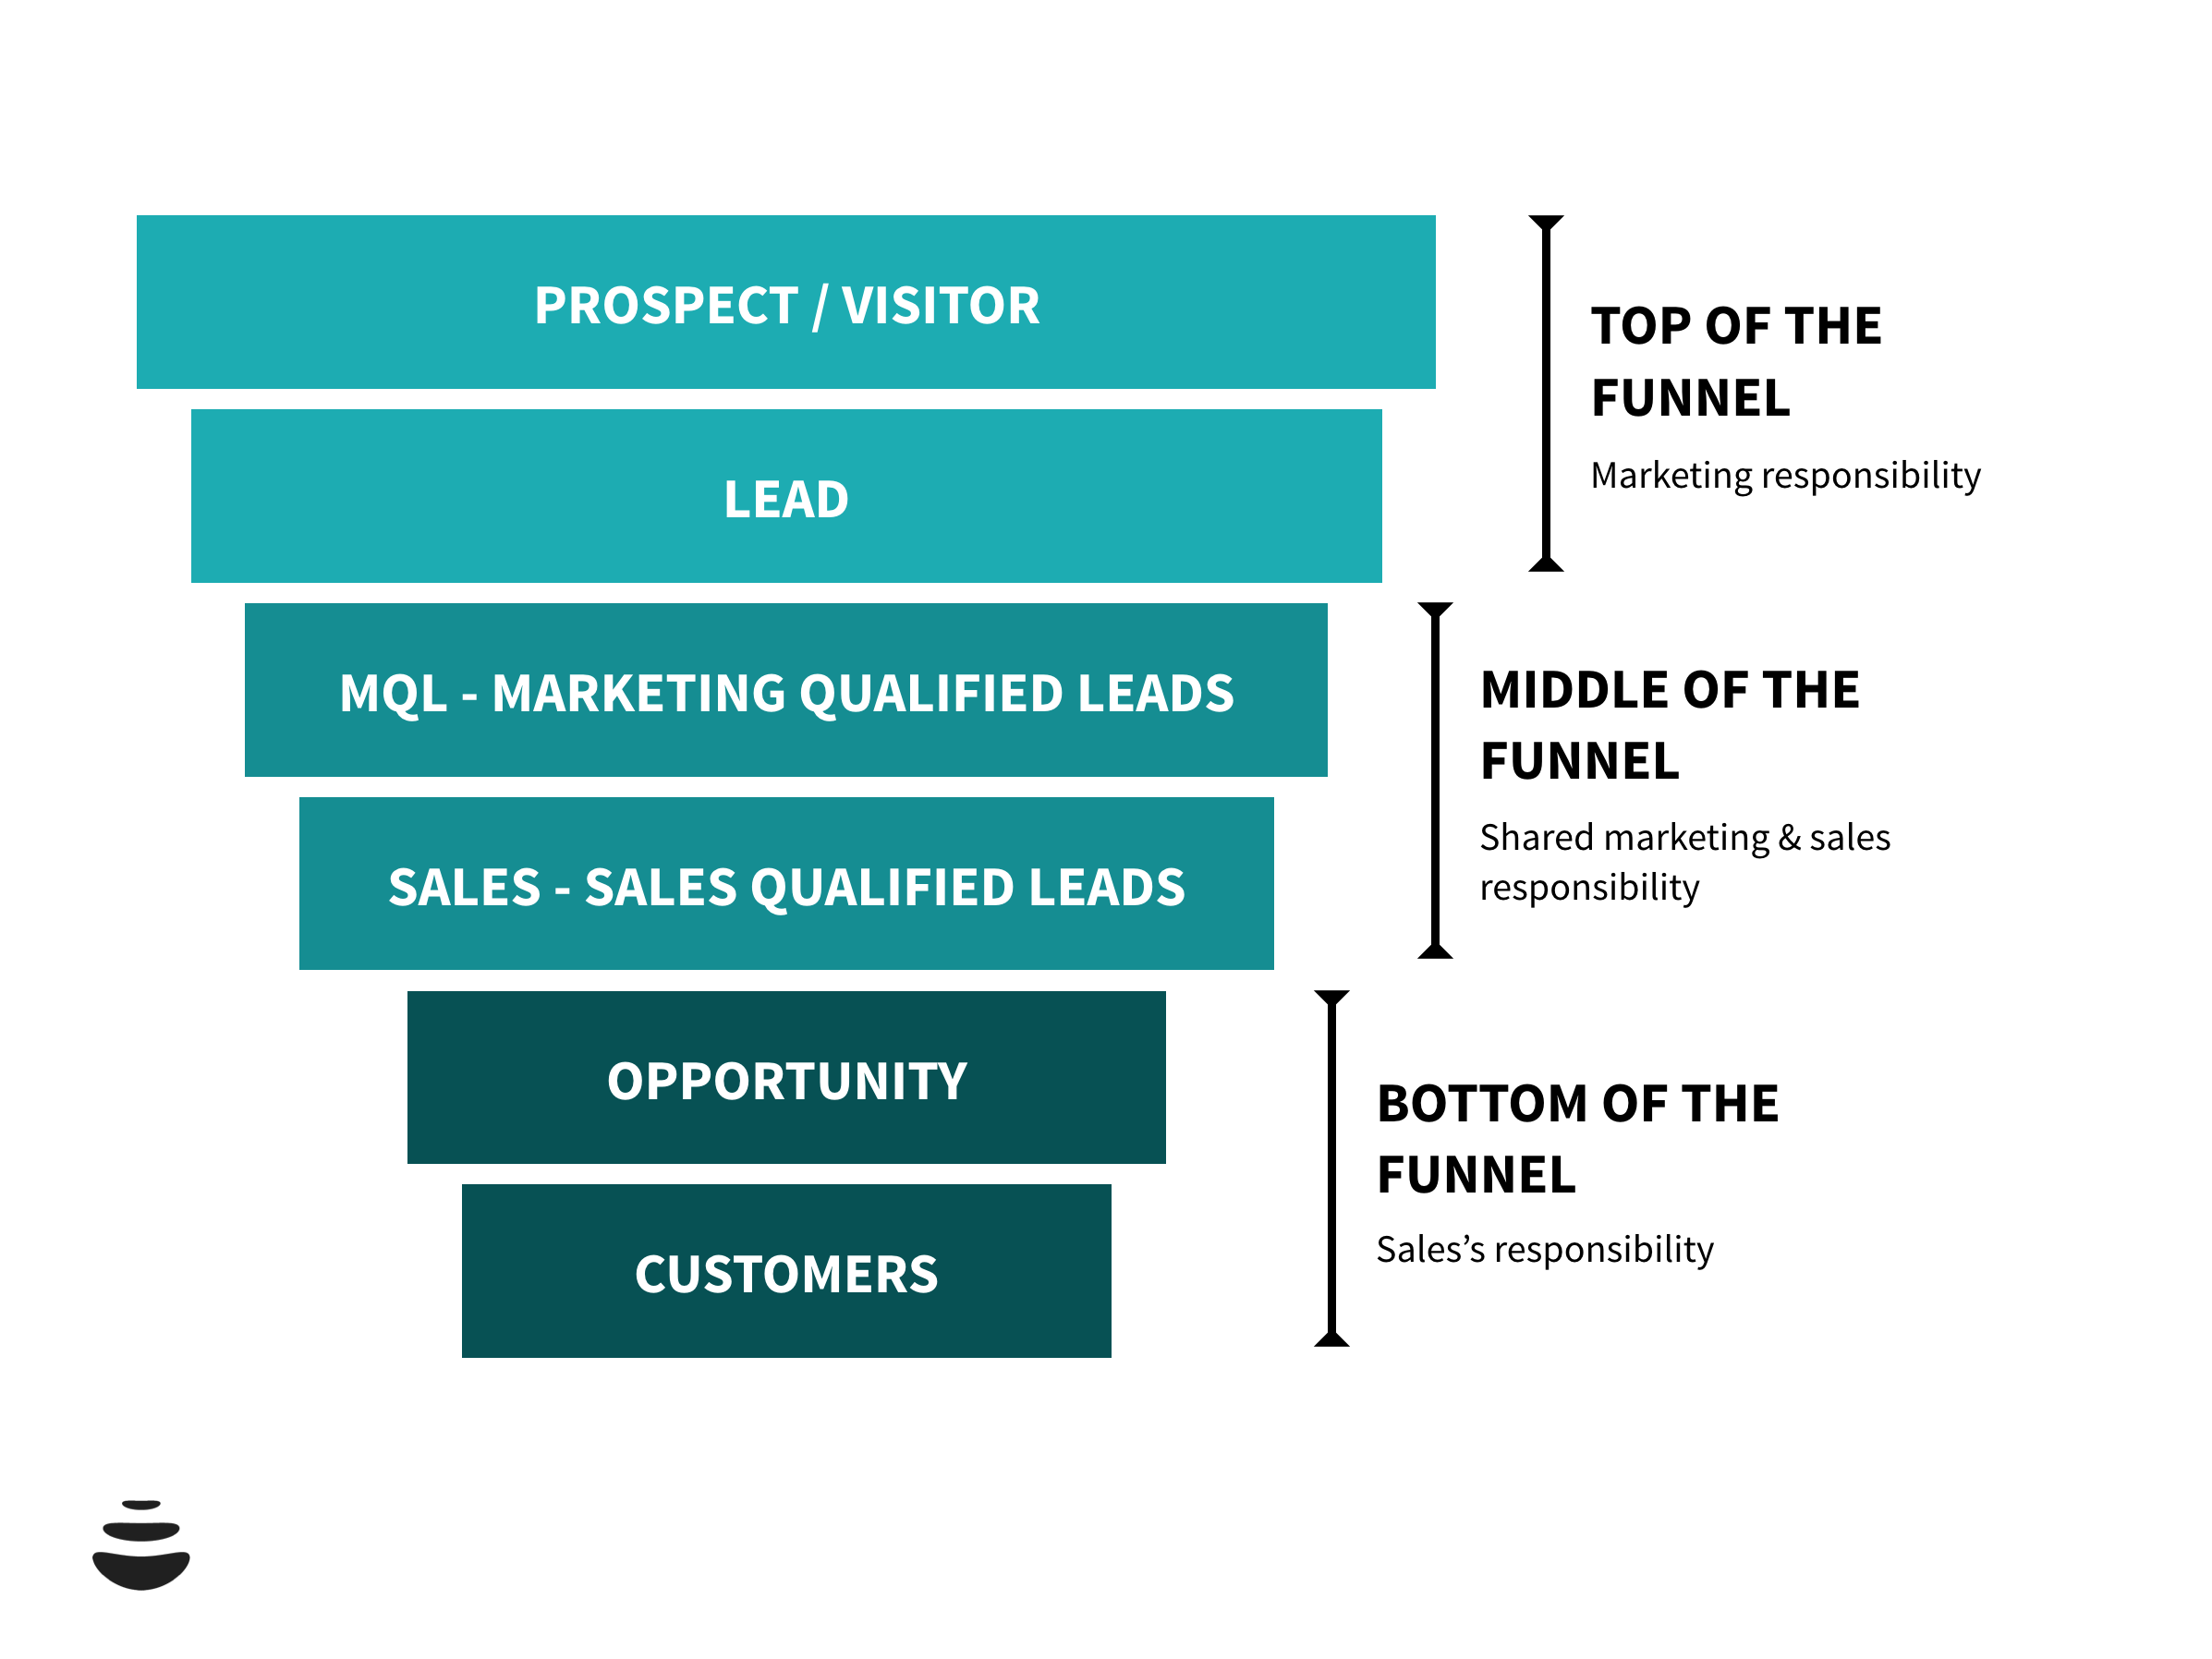 Definizione dei 6 stage del marketing e sales funnel.